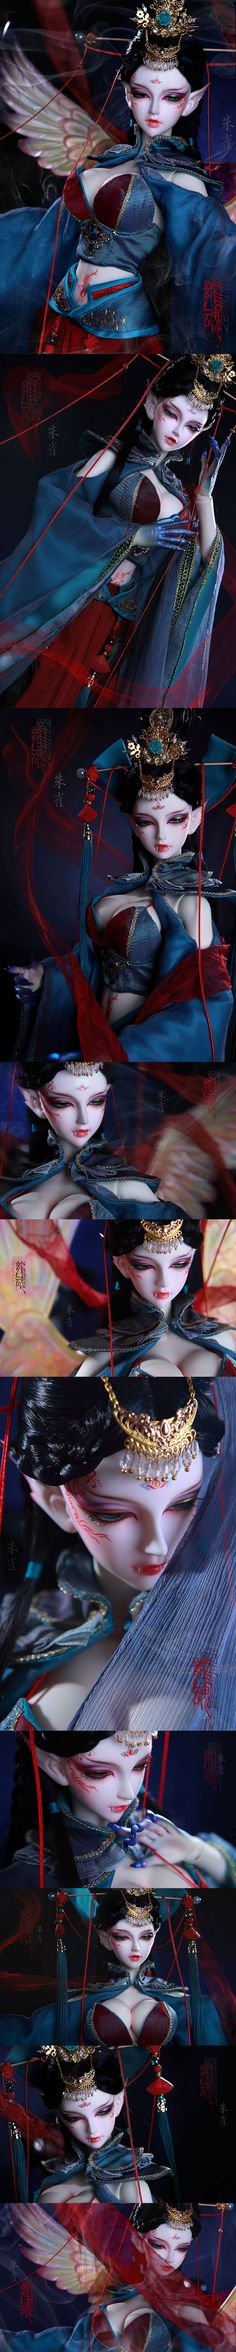 BJD Vermilioan Bird*Tanyue 69cm Limited Doll Boll-jointed doll_68-75cm dolls_LOONG SOUL_DOLL_Ball Jointed Dolls (BJD) company-Legenddoll